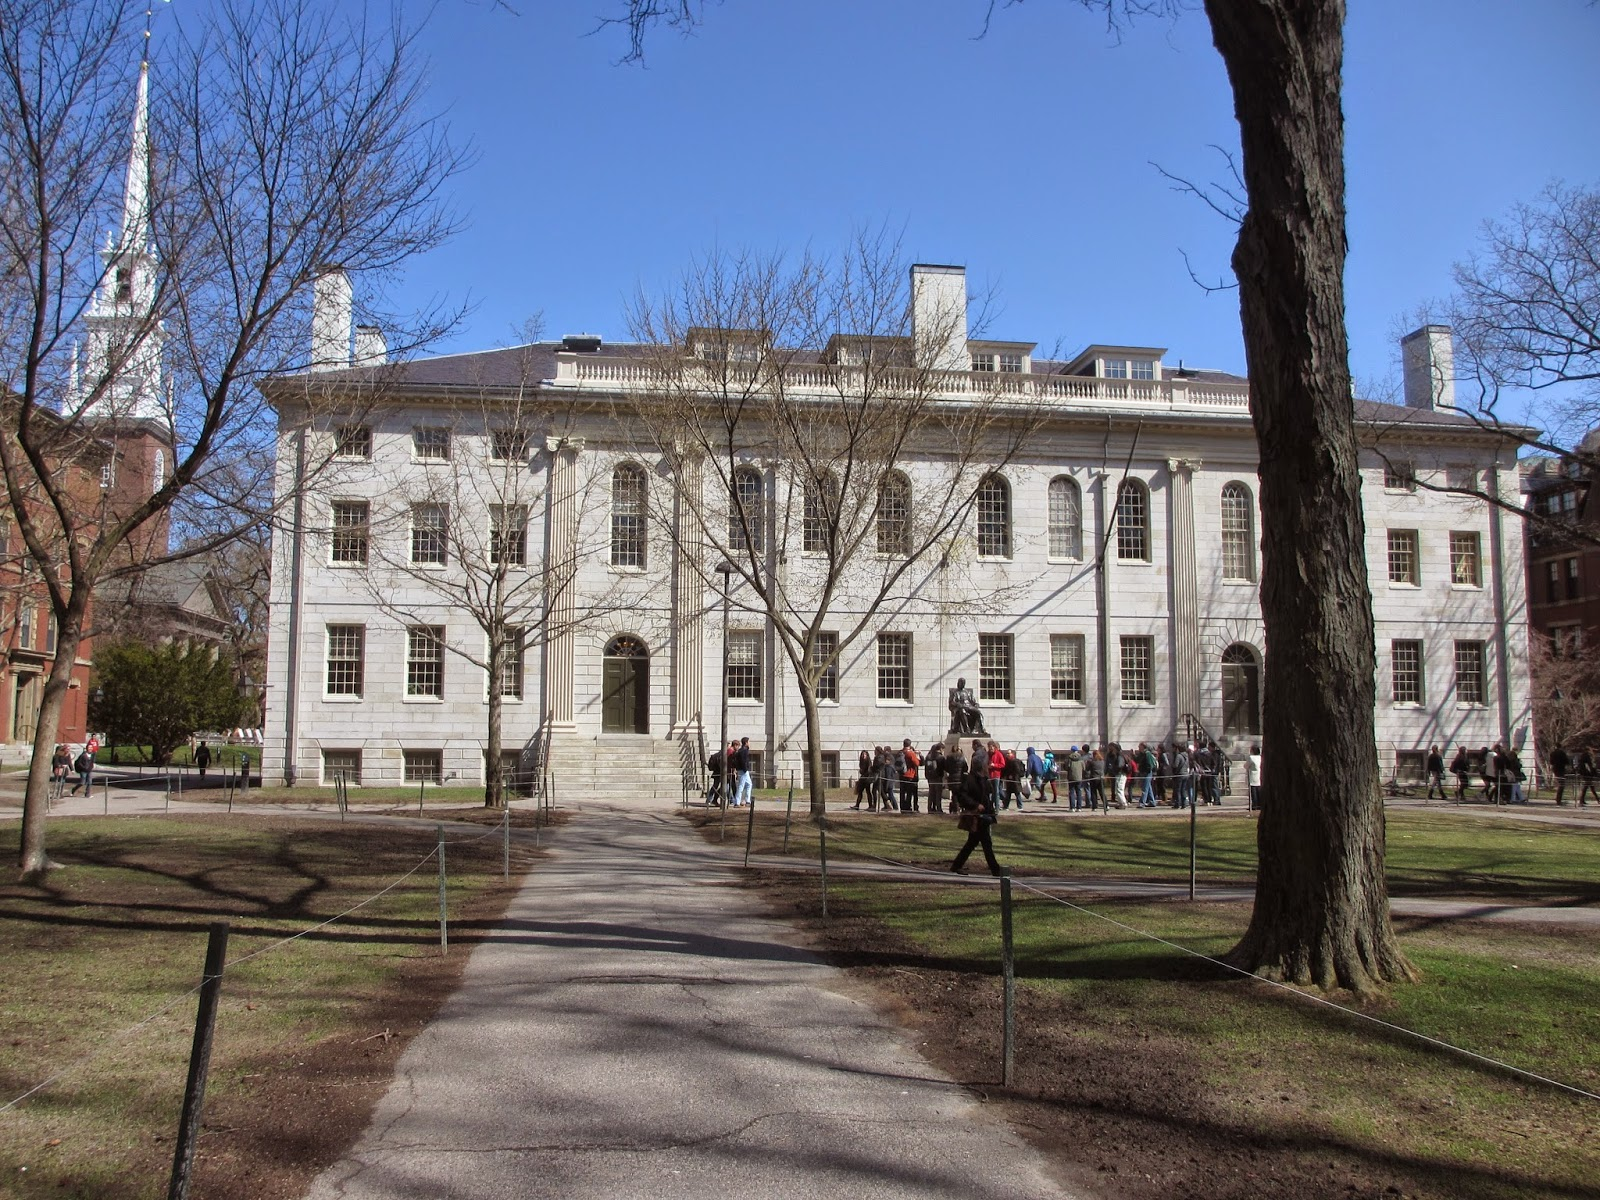 Visitar a Universidade de HARVARD e Massachusetts Institute of Technology (M.I.T.) em Boston | EUA